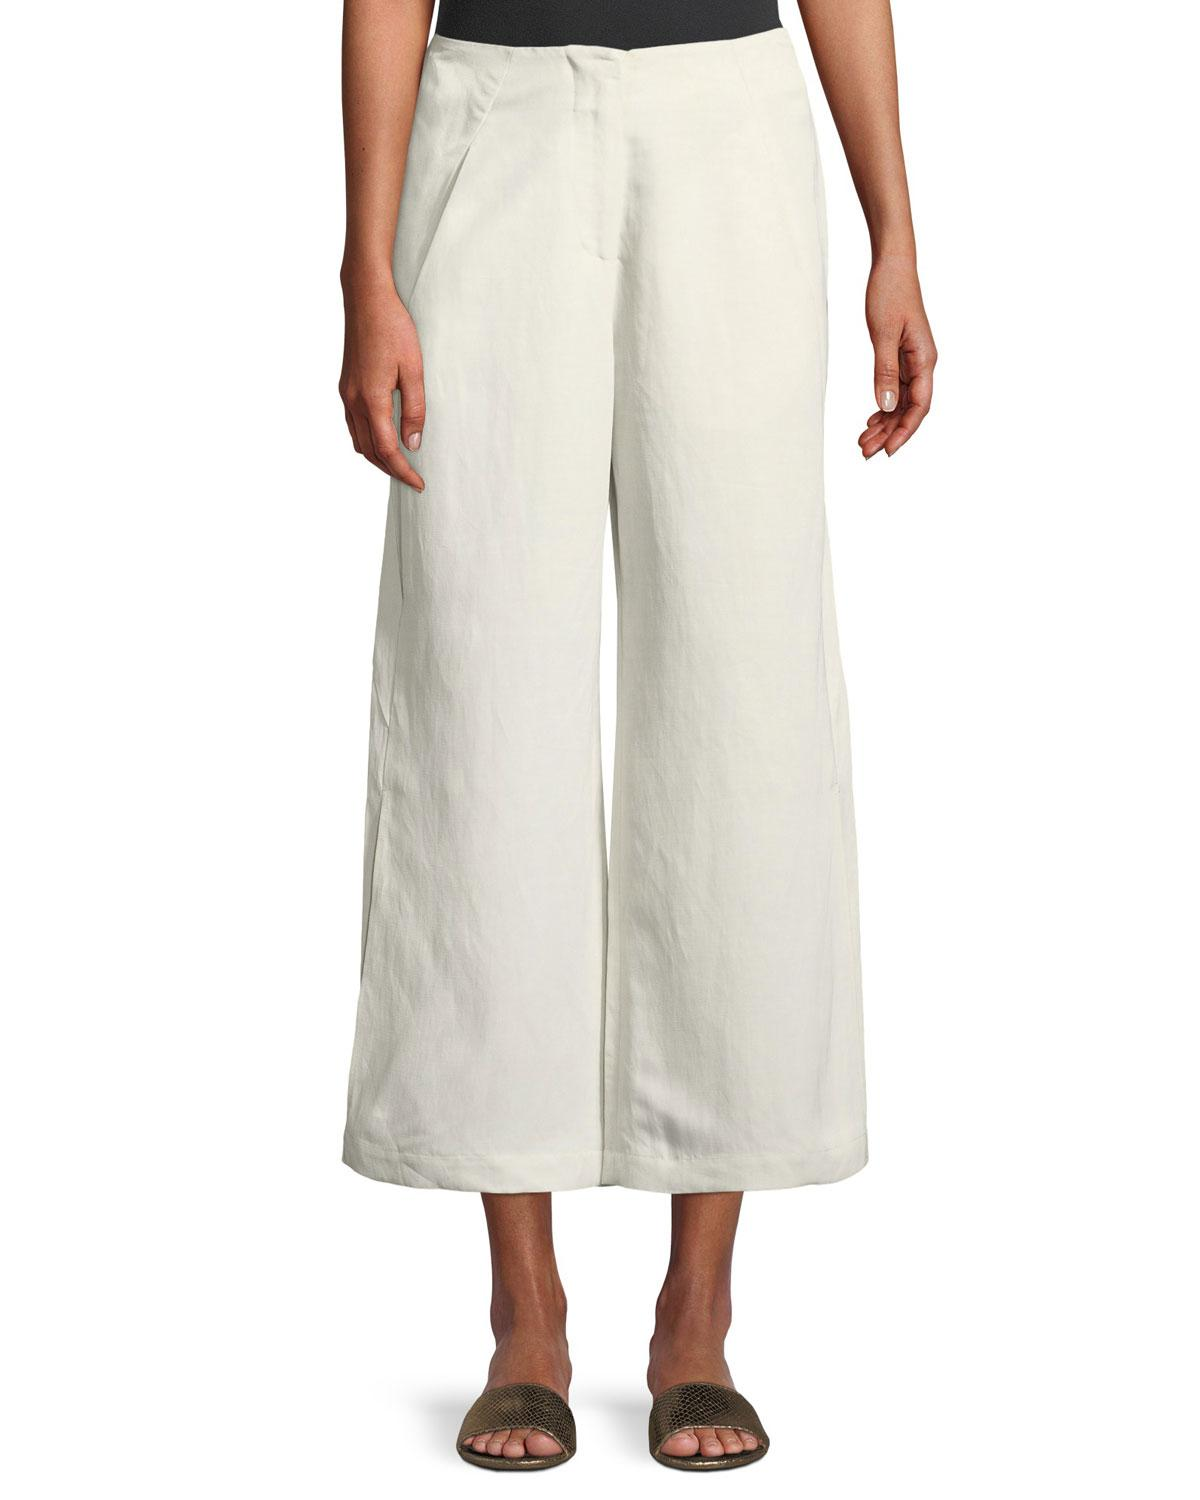 6e560f11ff8d Zero + Maria Cornejo. Women s White Tin Lightweight Linen-blend Wide-leg  Pants